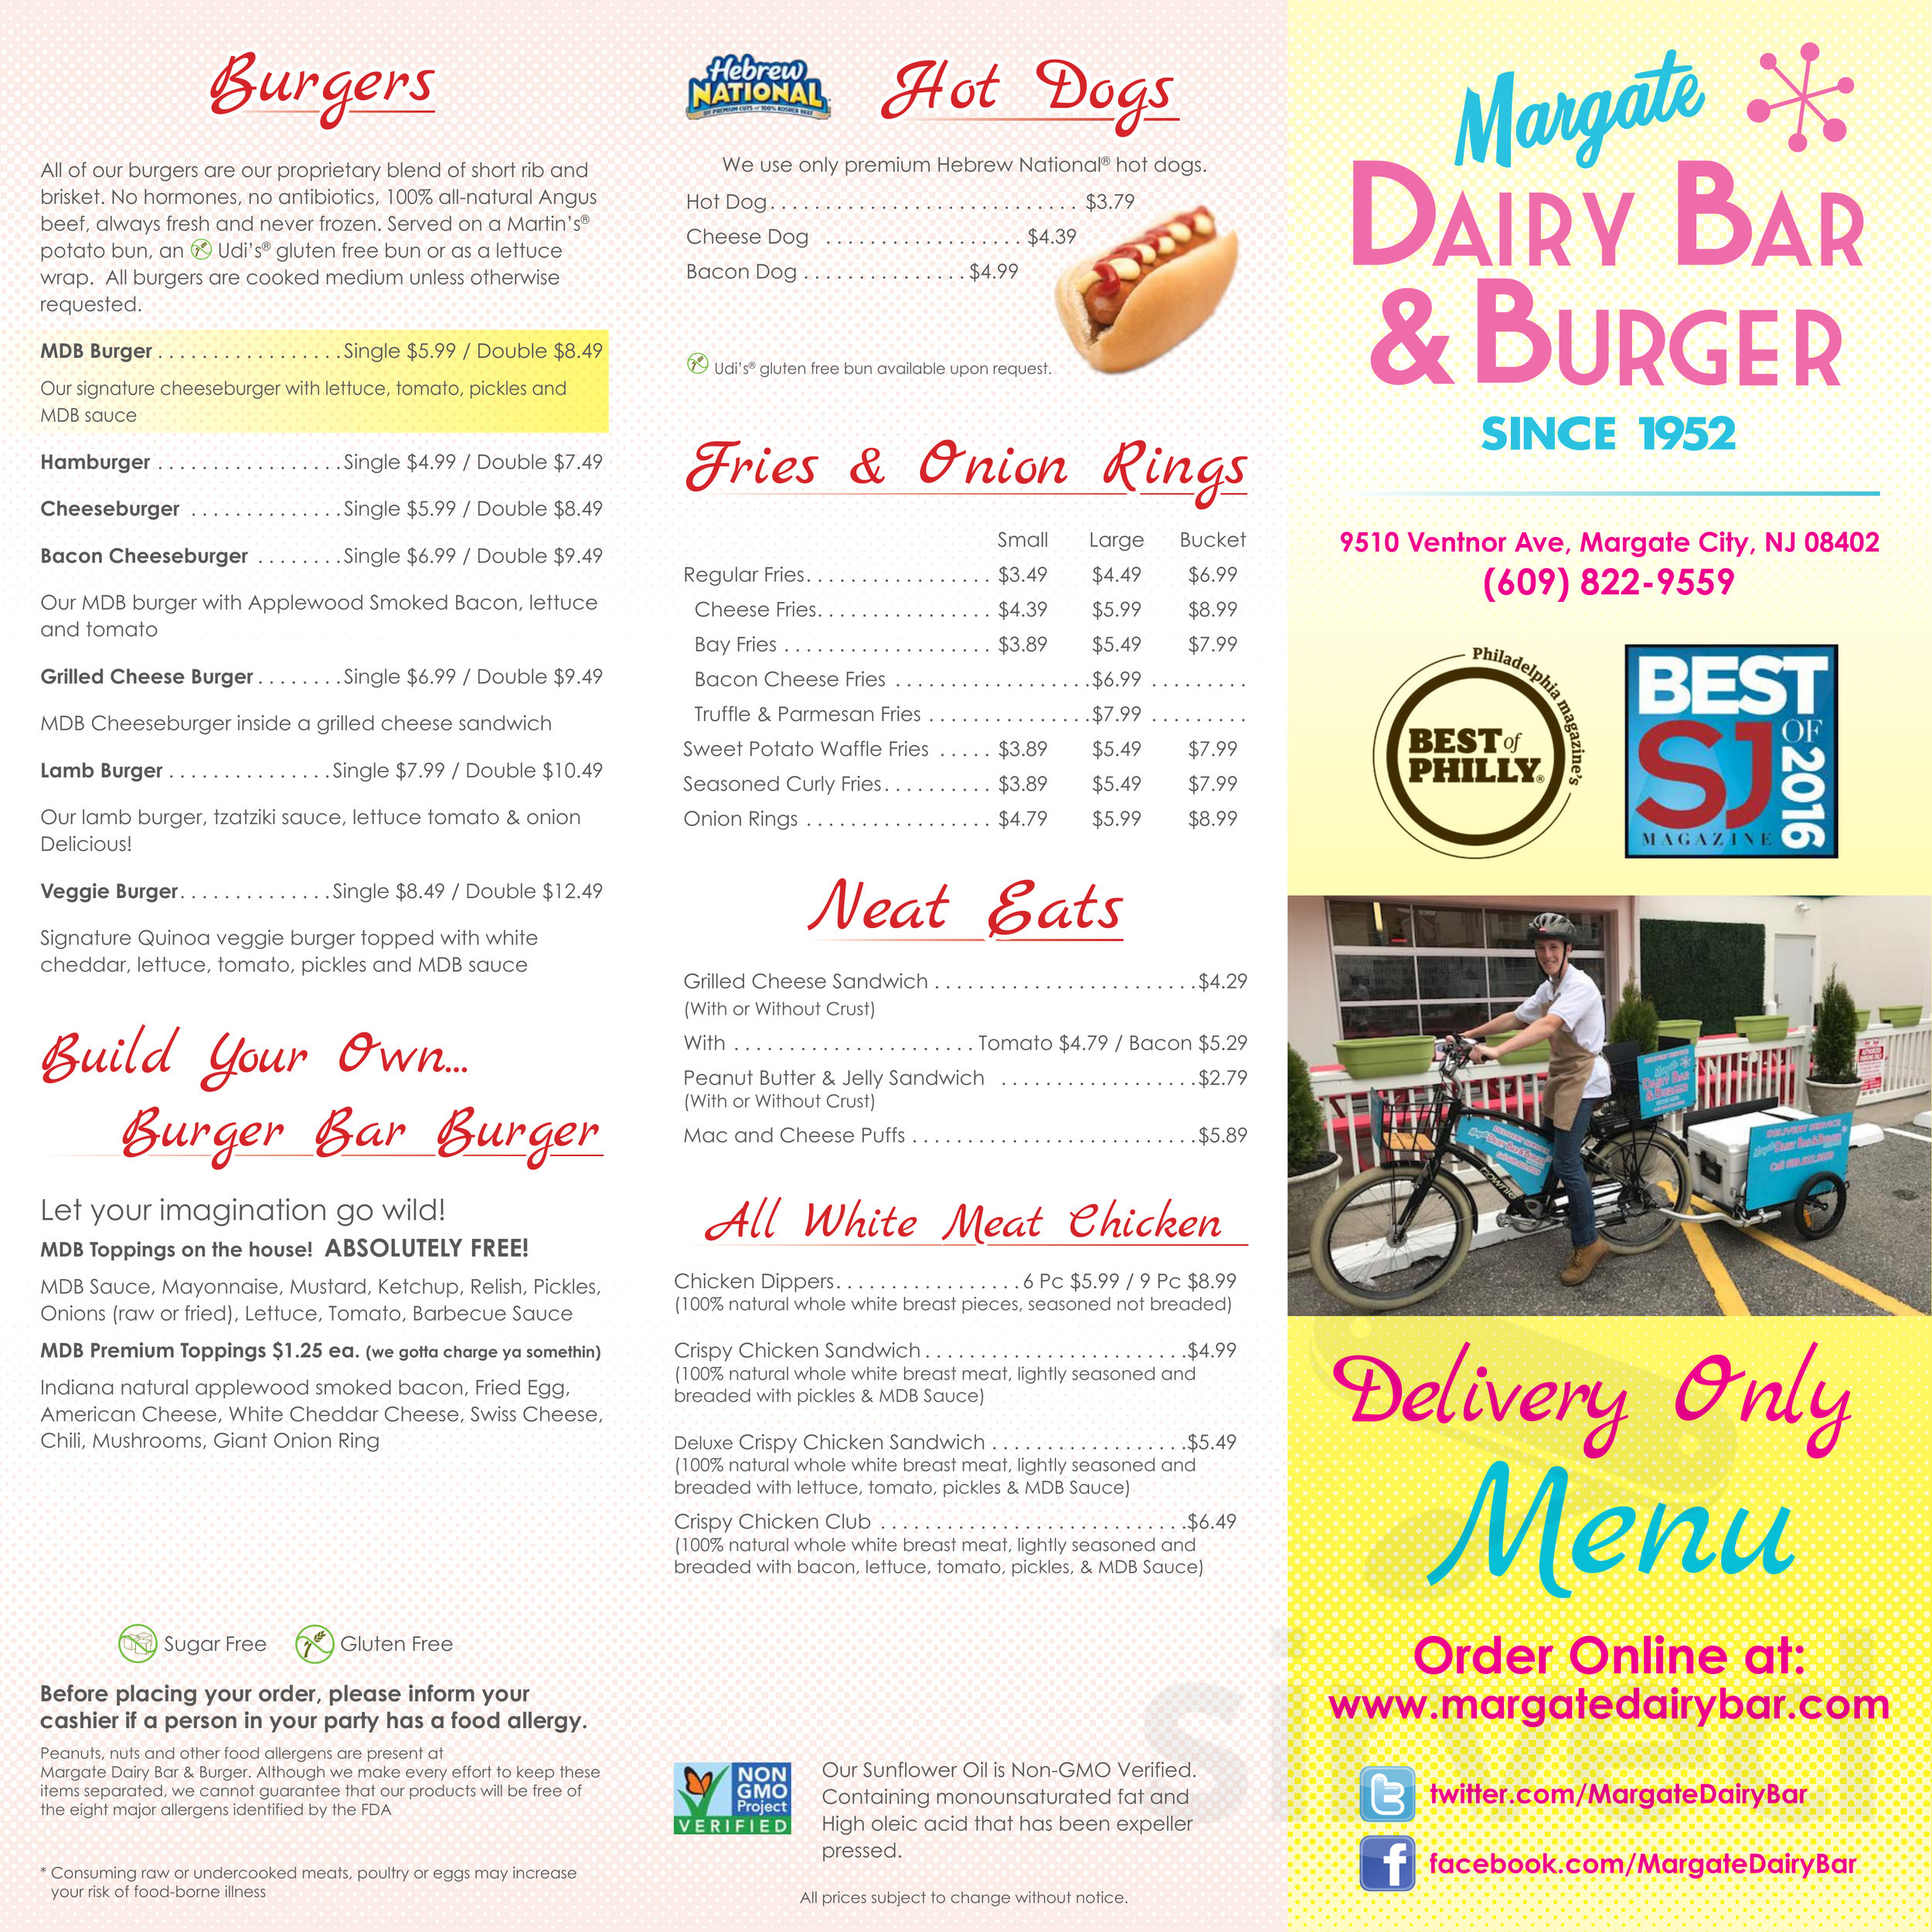 Margate Dairy Bar Burger Menu In Margate City New Jersey